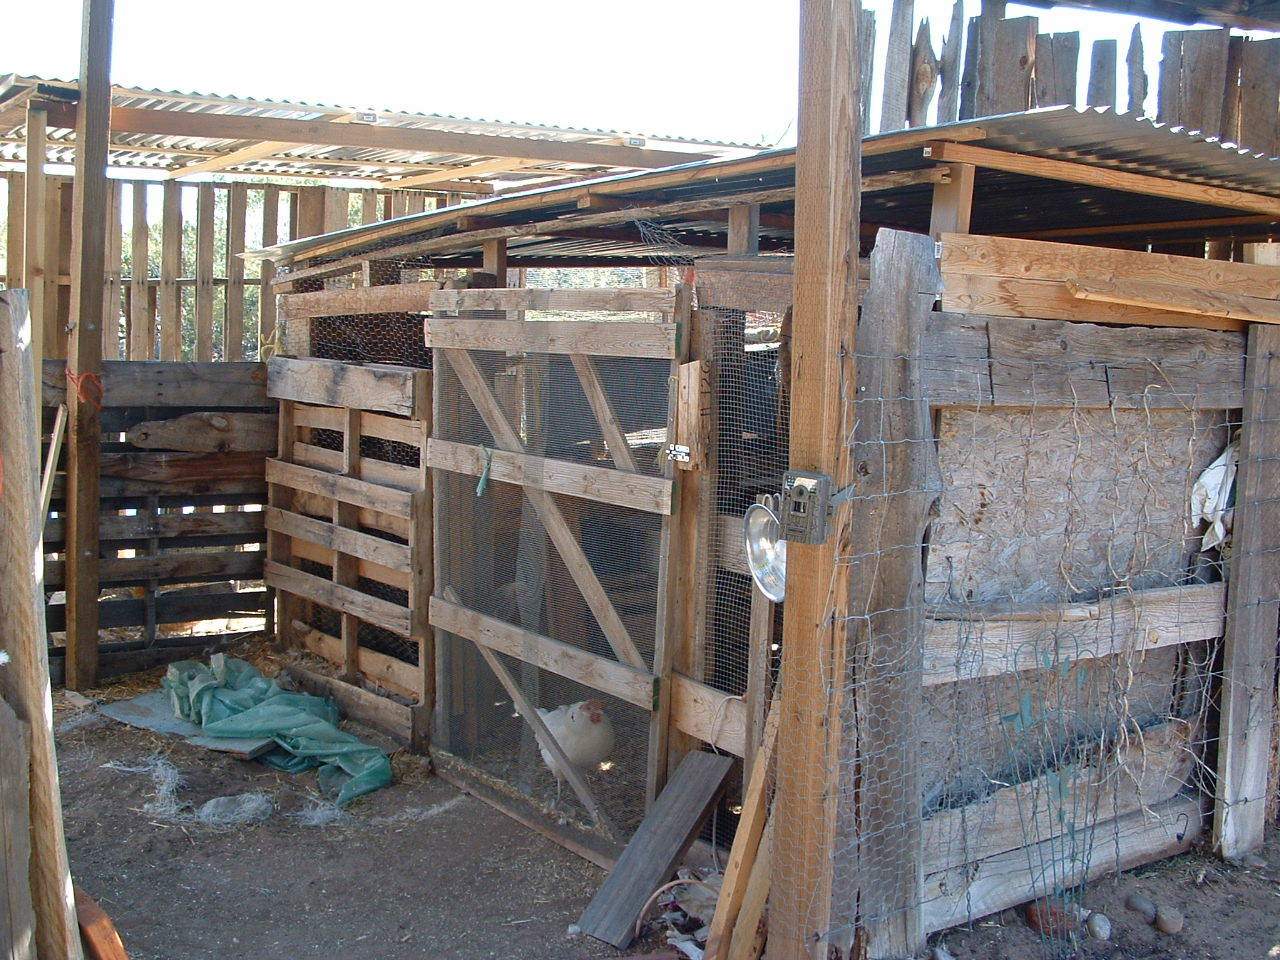 coop area made out of scrap wood. The run made mostly out of pallets and scrap wood and metal roofing.